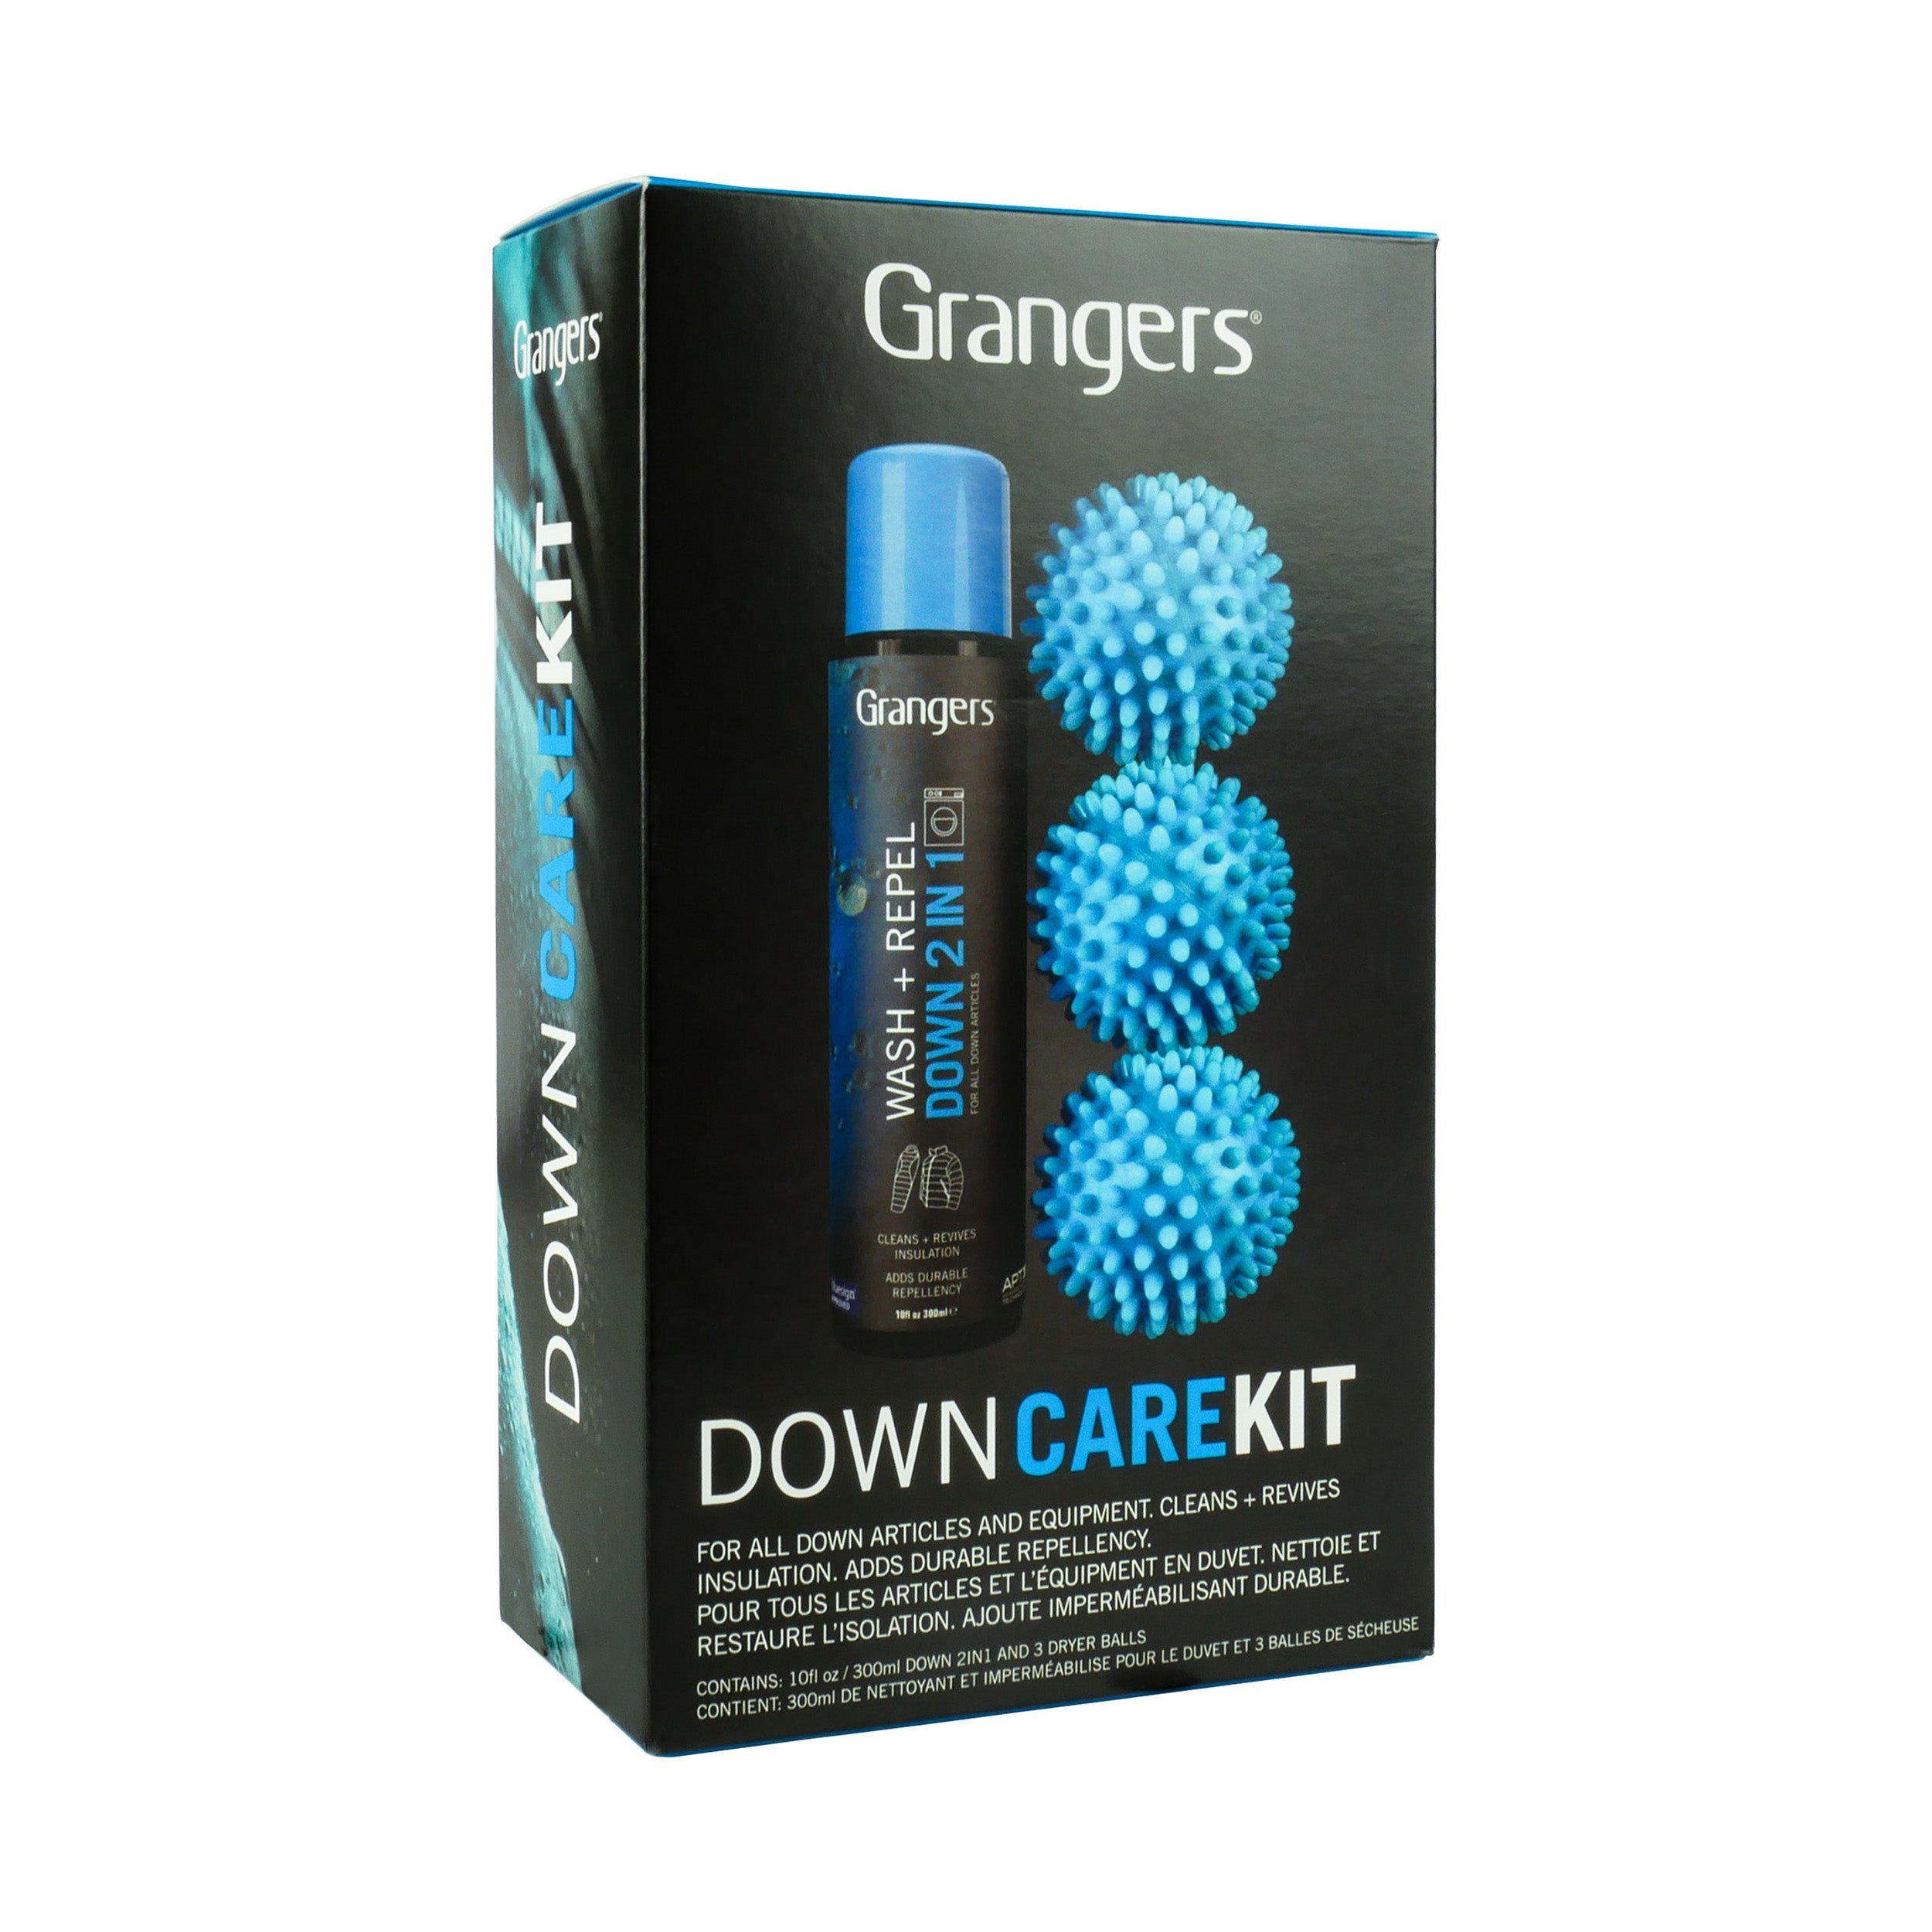 Down Care Kit